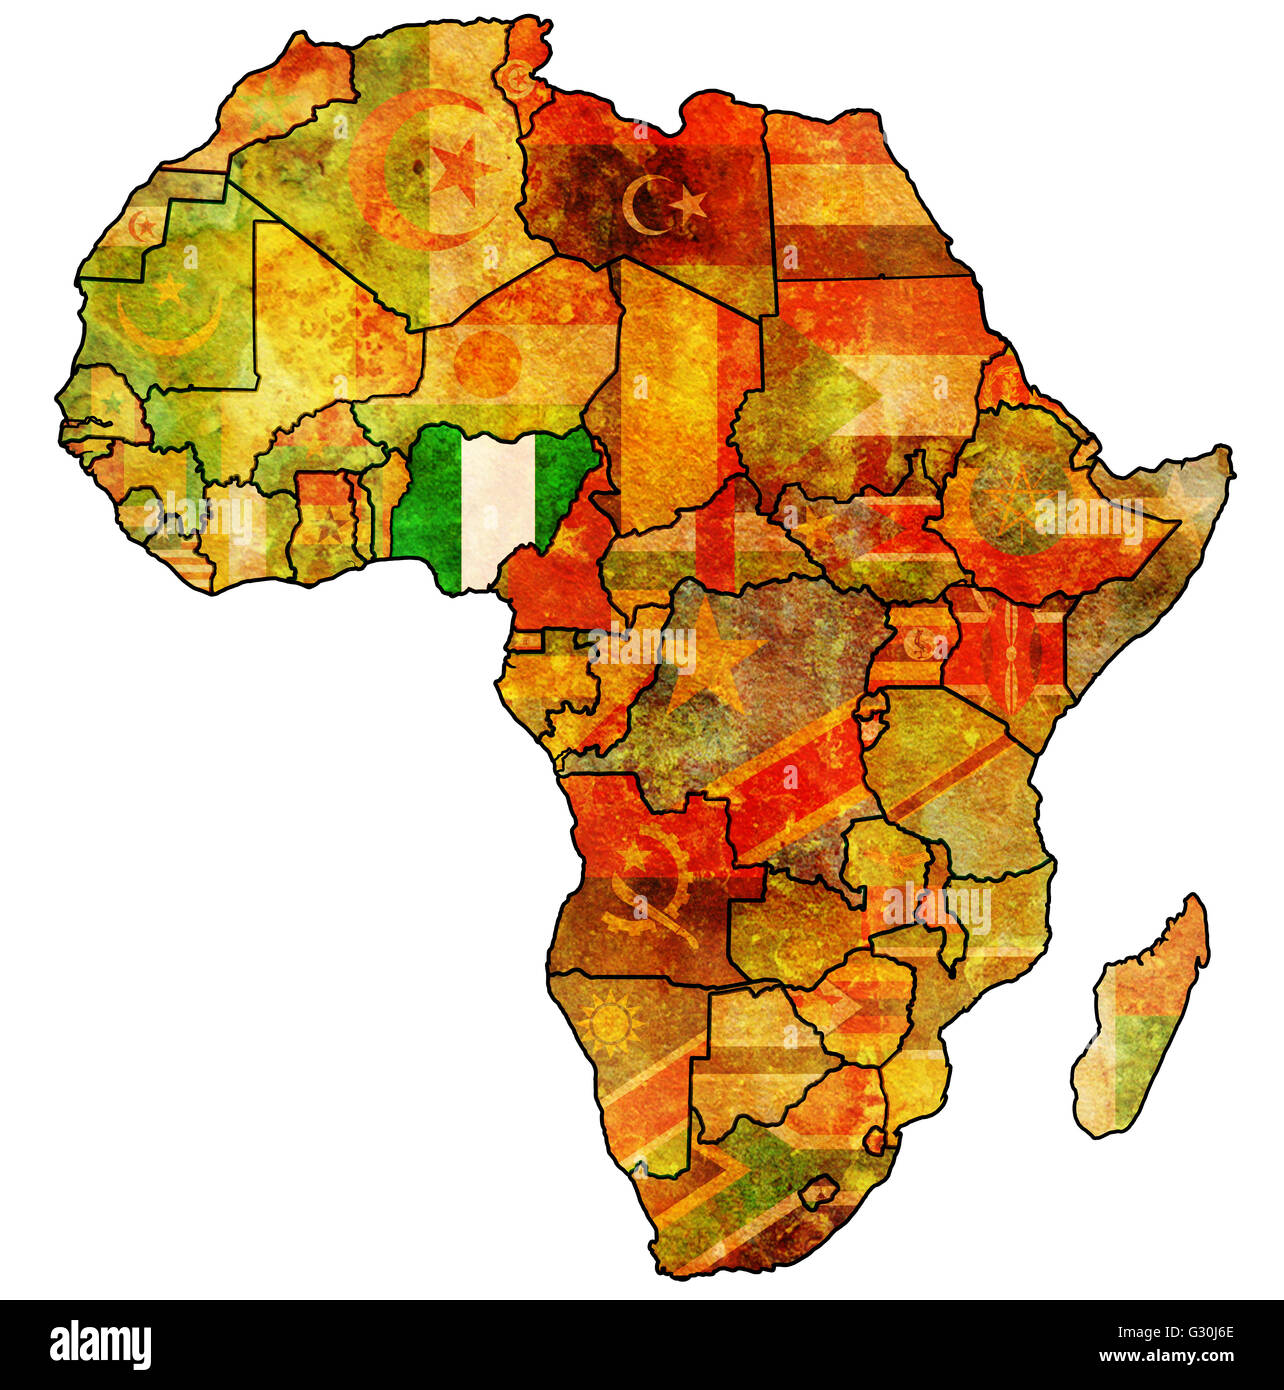 nigeria on actual vintage political map of africa with flags Stock ...